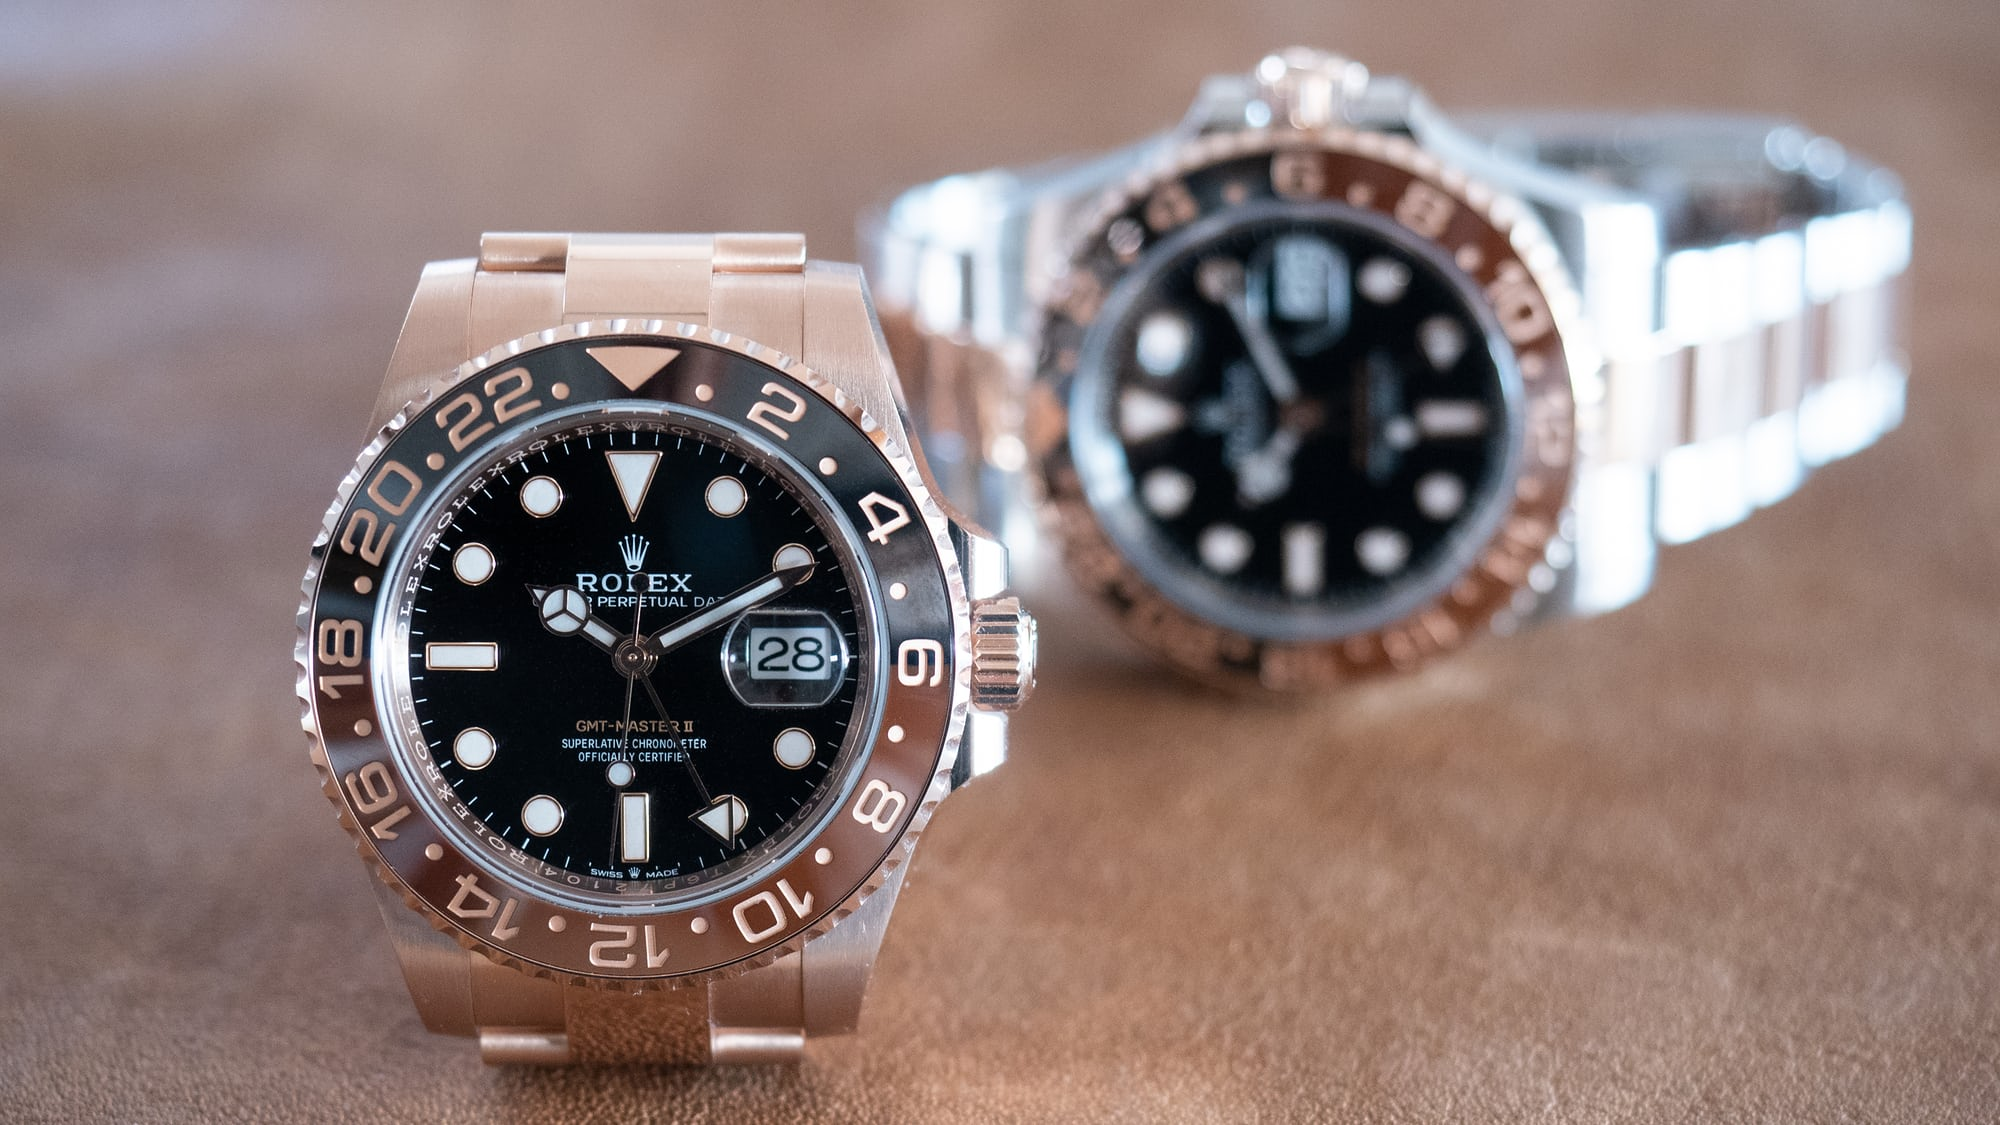 P5240667.jpg?ixlib=rails 1.1  Hands-On: The Rolex Everose GMT Master II Vs. The GMT Master II In Oystersteel And Everose Gold P5240667